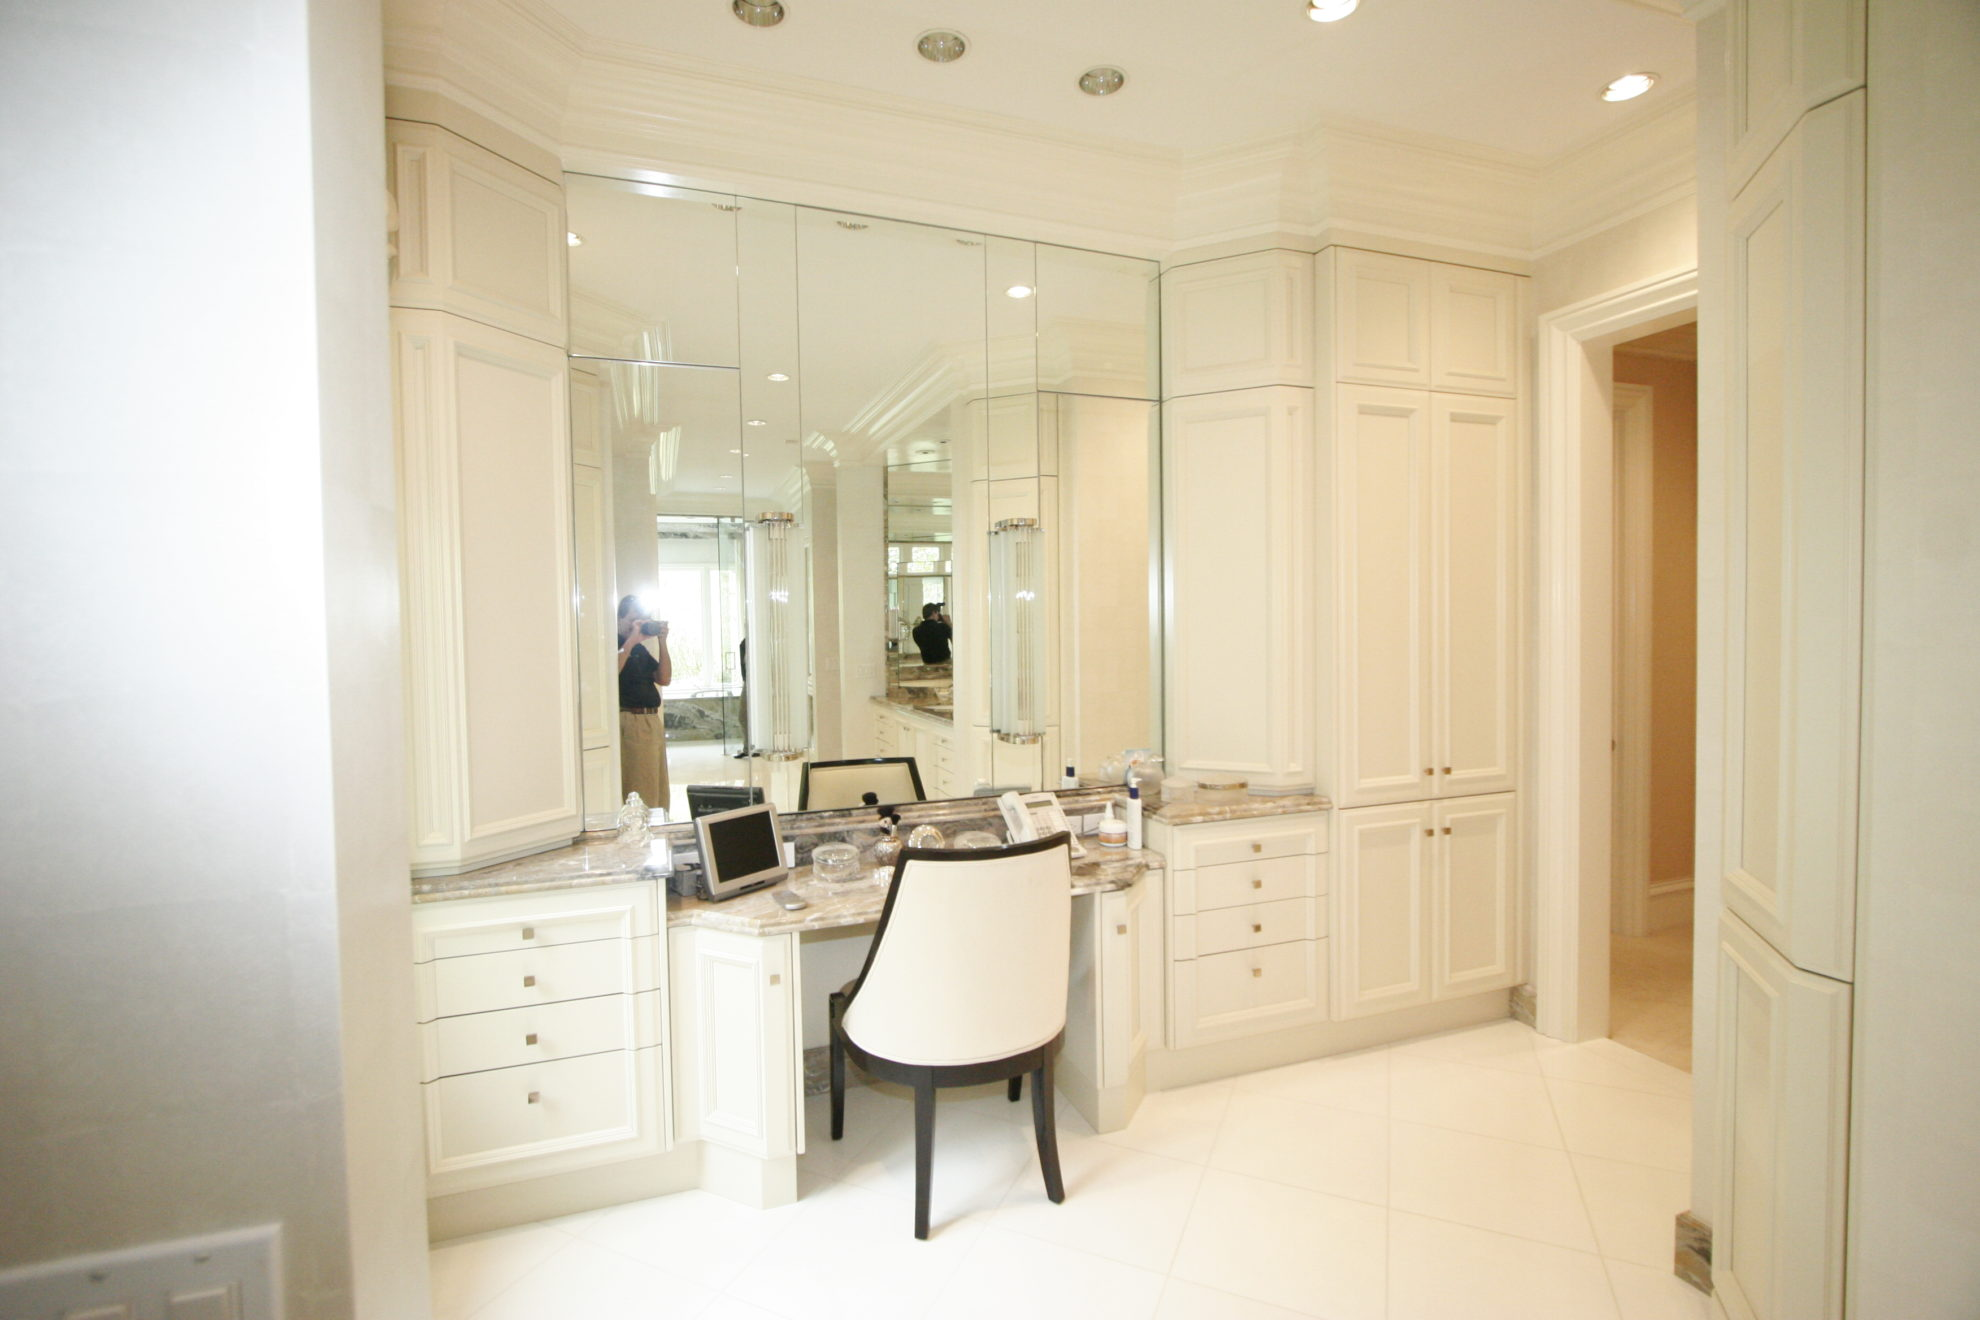 Bathroom Master Elegant Traditional White Painted With Makeup Vanity Mirrored Medicine Cabinet Creative Cabinetry Inc